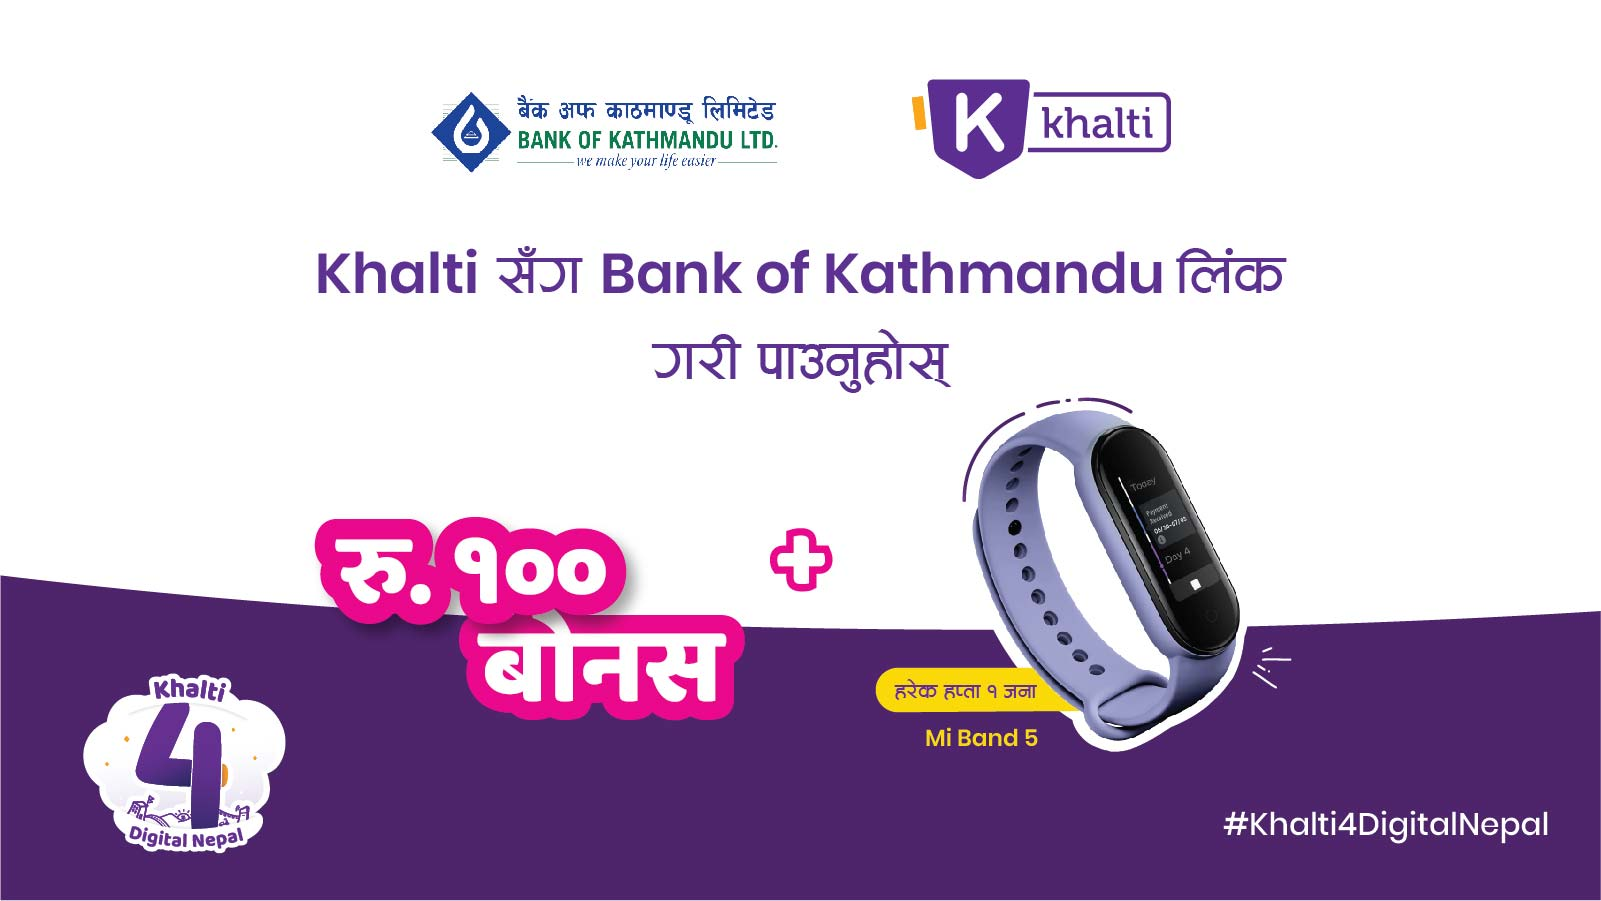 Get Rs 100 Bonus on Linking your Bank of Kathmandu Account with Khalti Digital Wallet